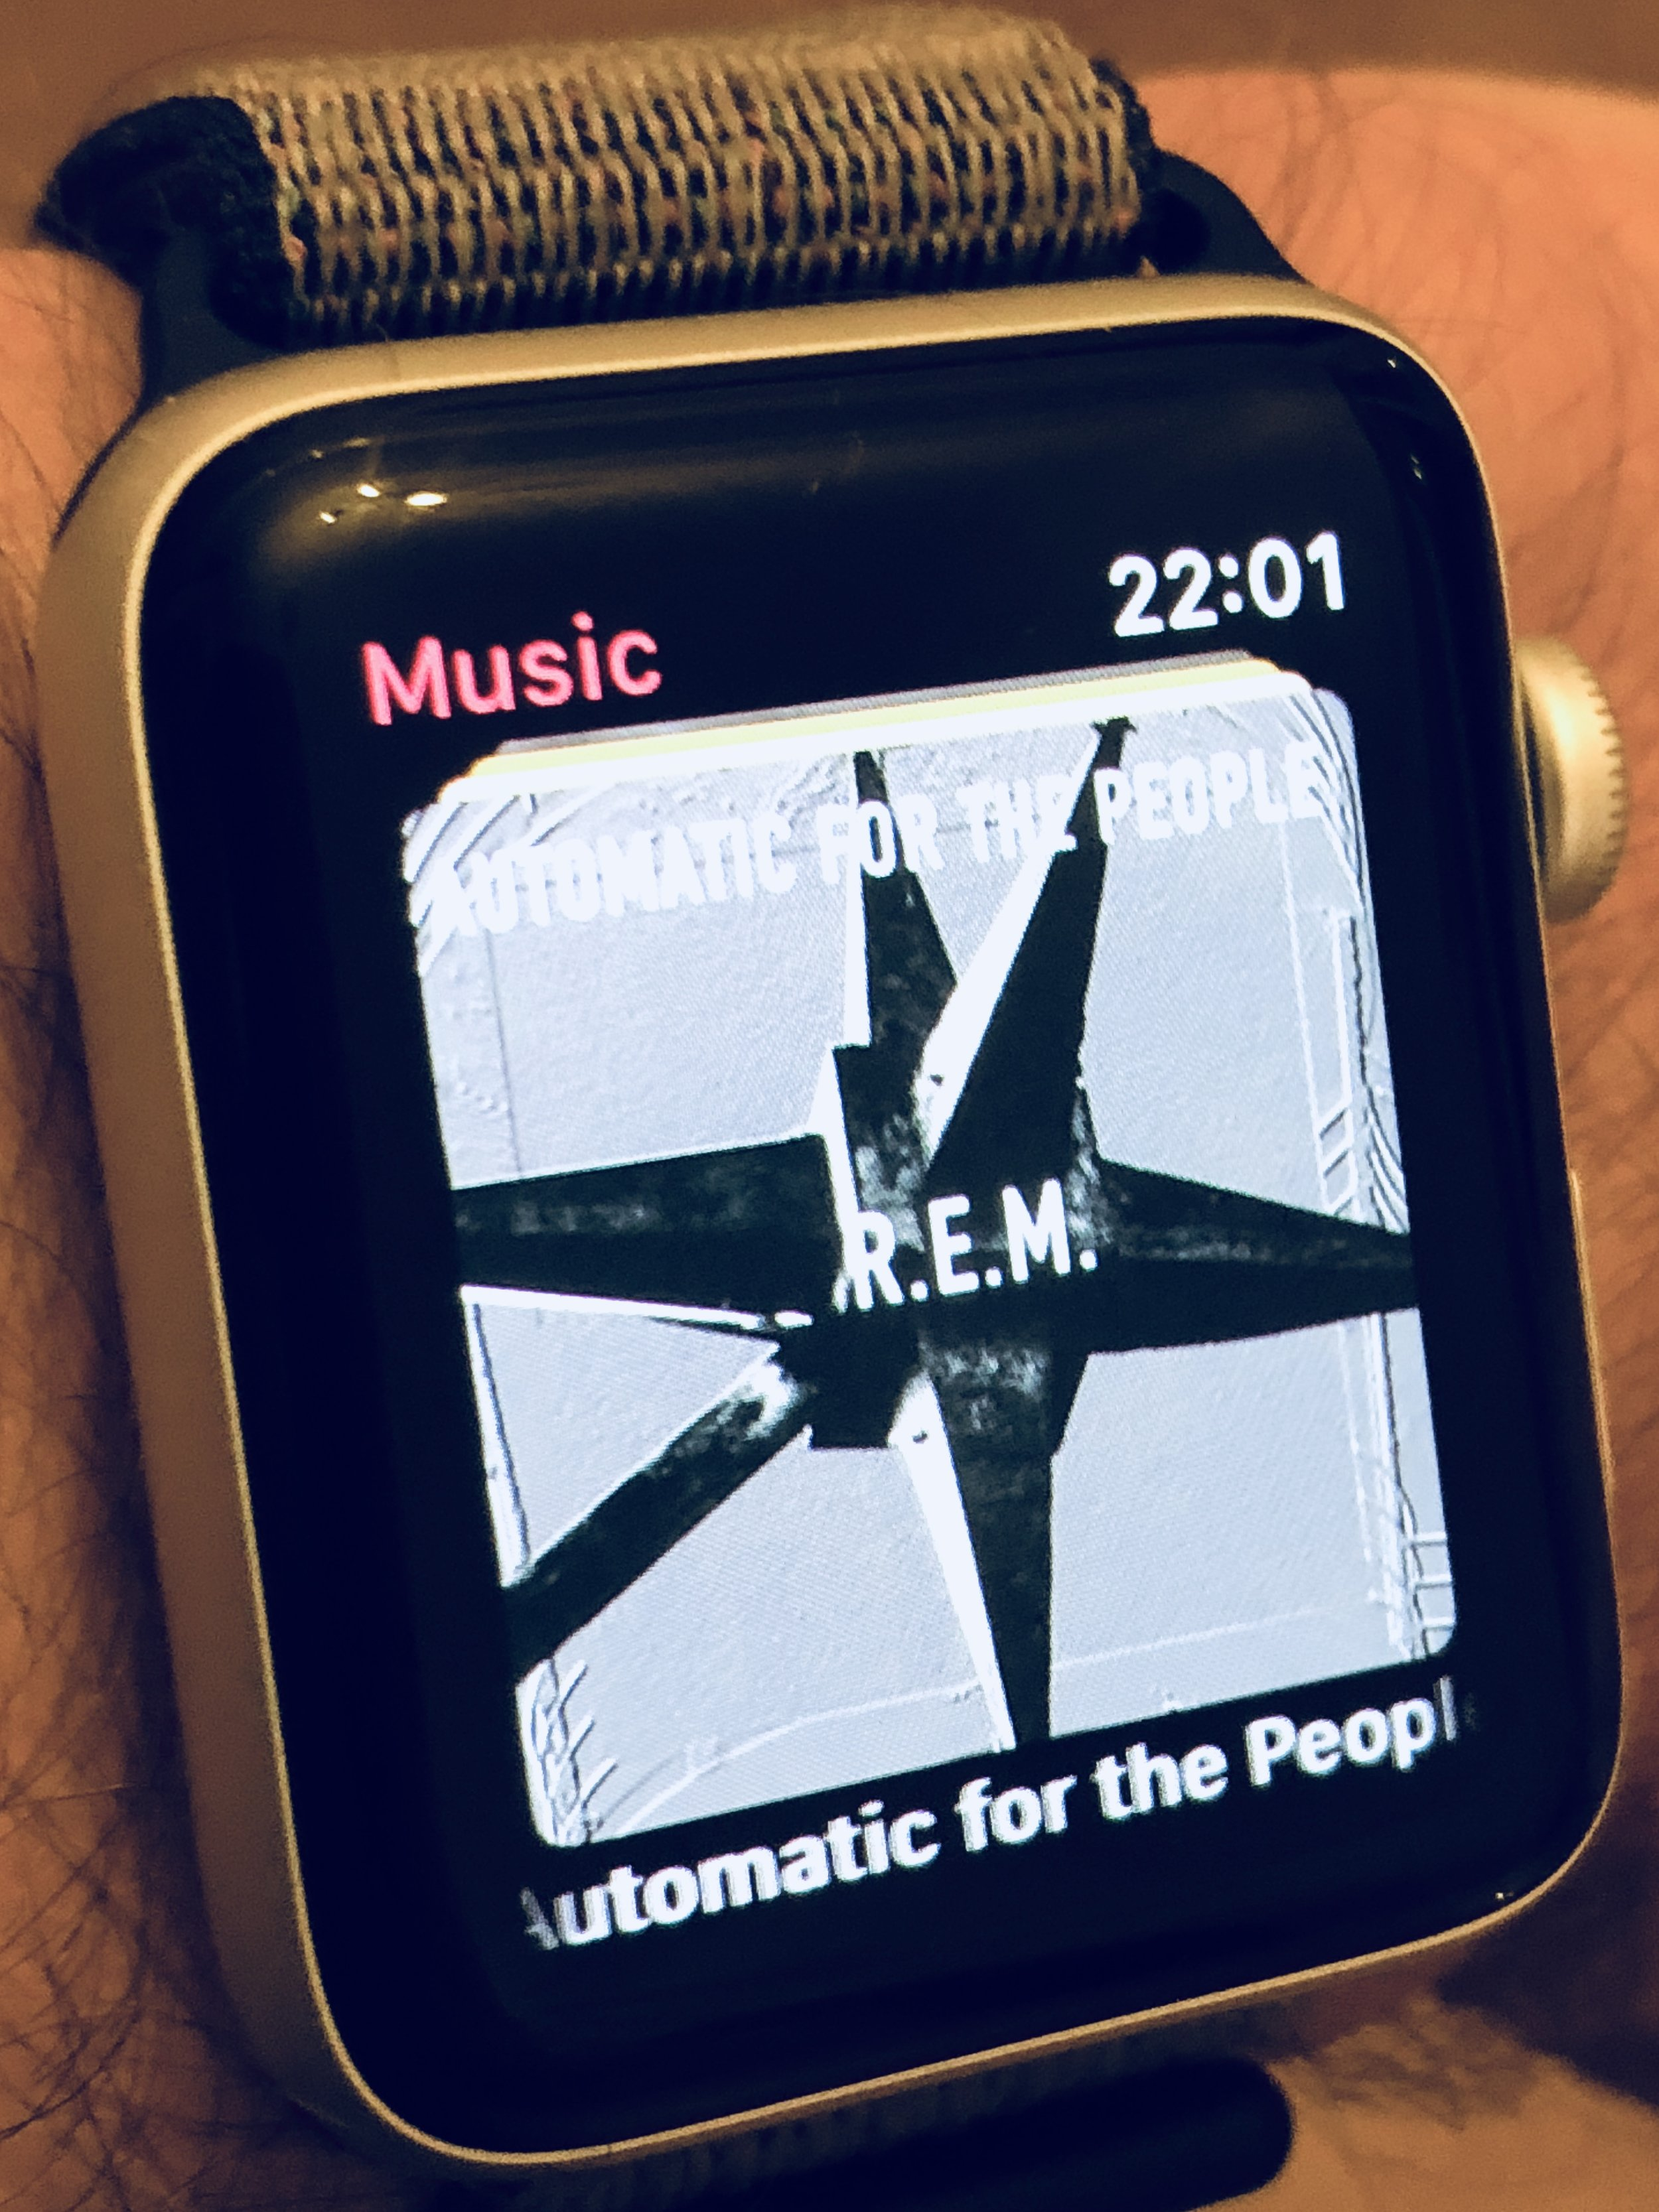 How to Run with Music with Apple Watch — The Apple Watch